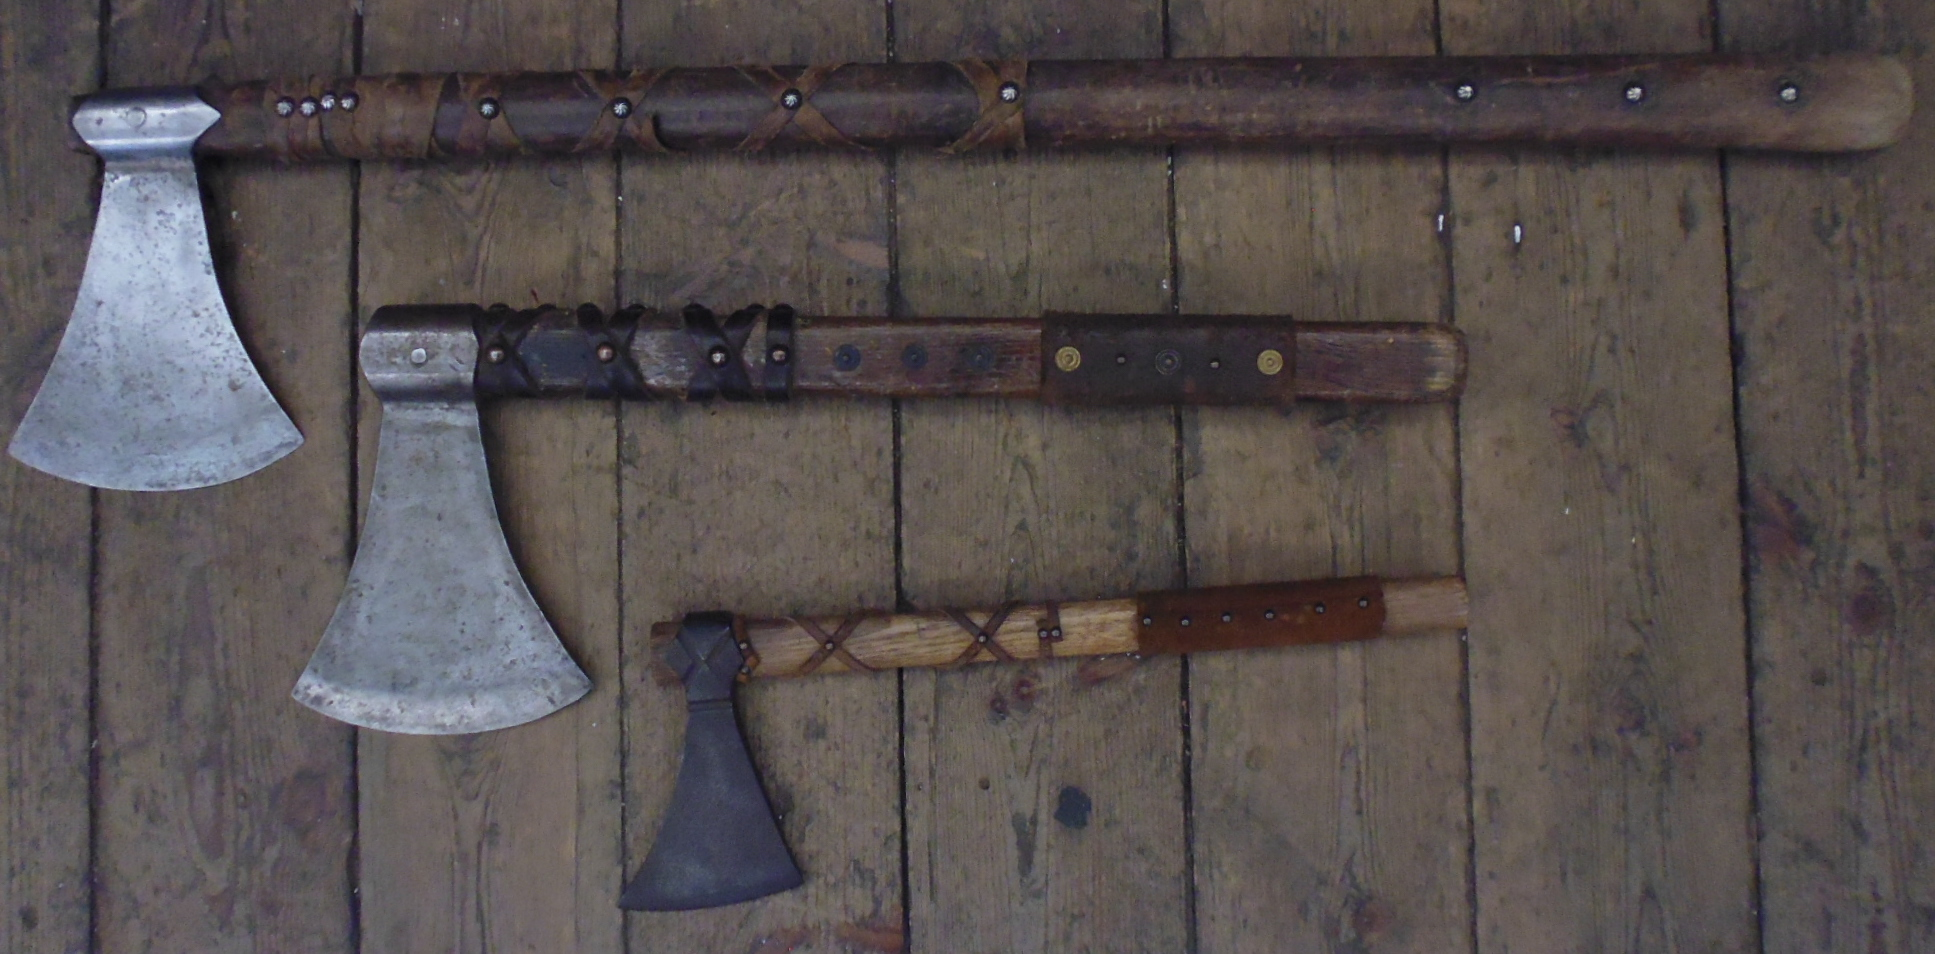 Leather thong grip axes